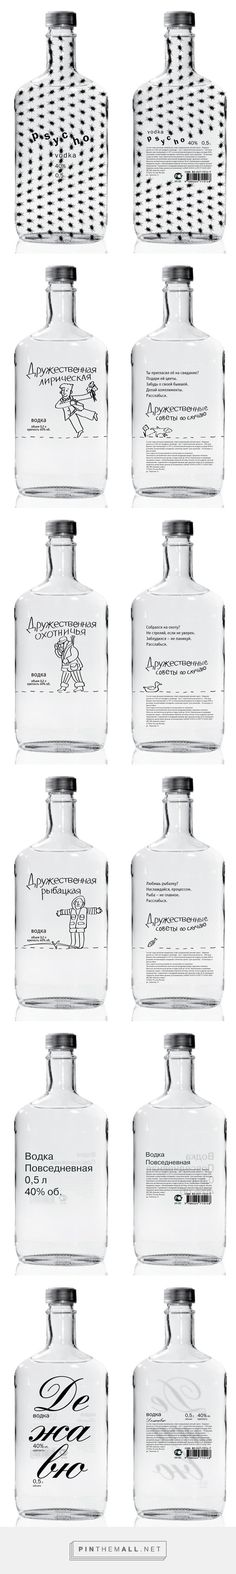 Russian Student vodka packaging In black on Packaging Design Served curated by Packaging Diva PD. Remember the Psycho Vodka bottle (my fav)? Just found out there are a bunch more : )